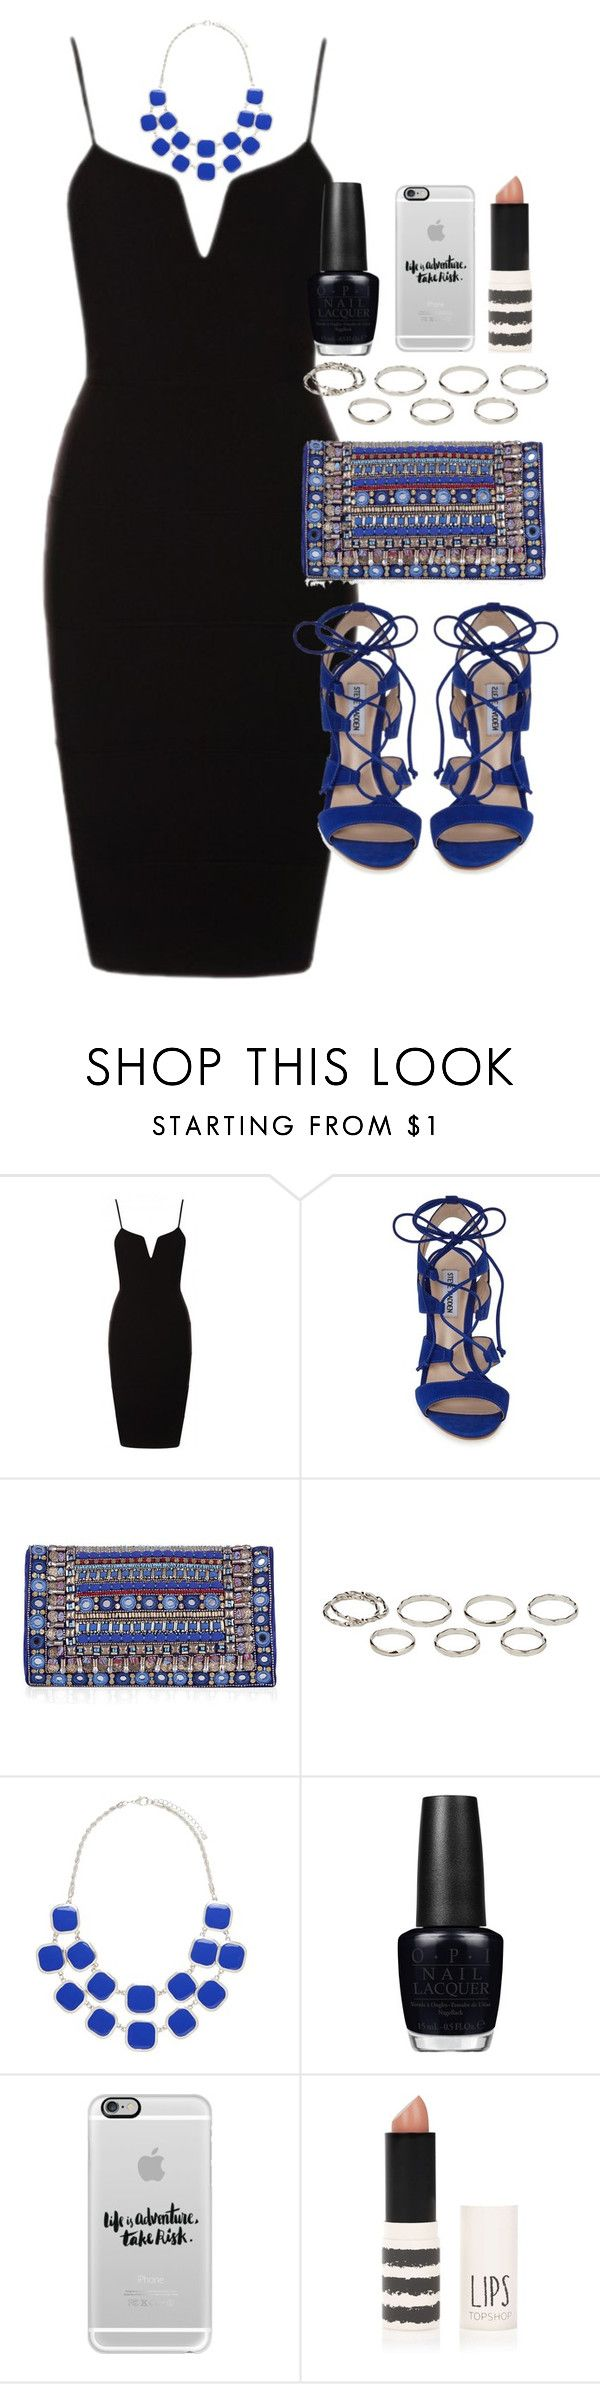 """Outfit for prom"" by ferned ❤ liked on Polyvore featuring Steve Madden, Matthew Williamson, Akira, Forever New, OPI, Casetify and Topshop"